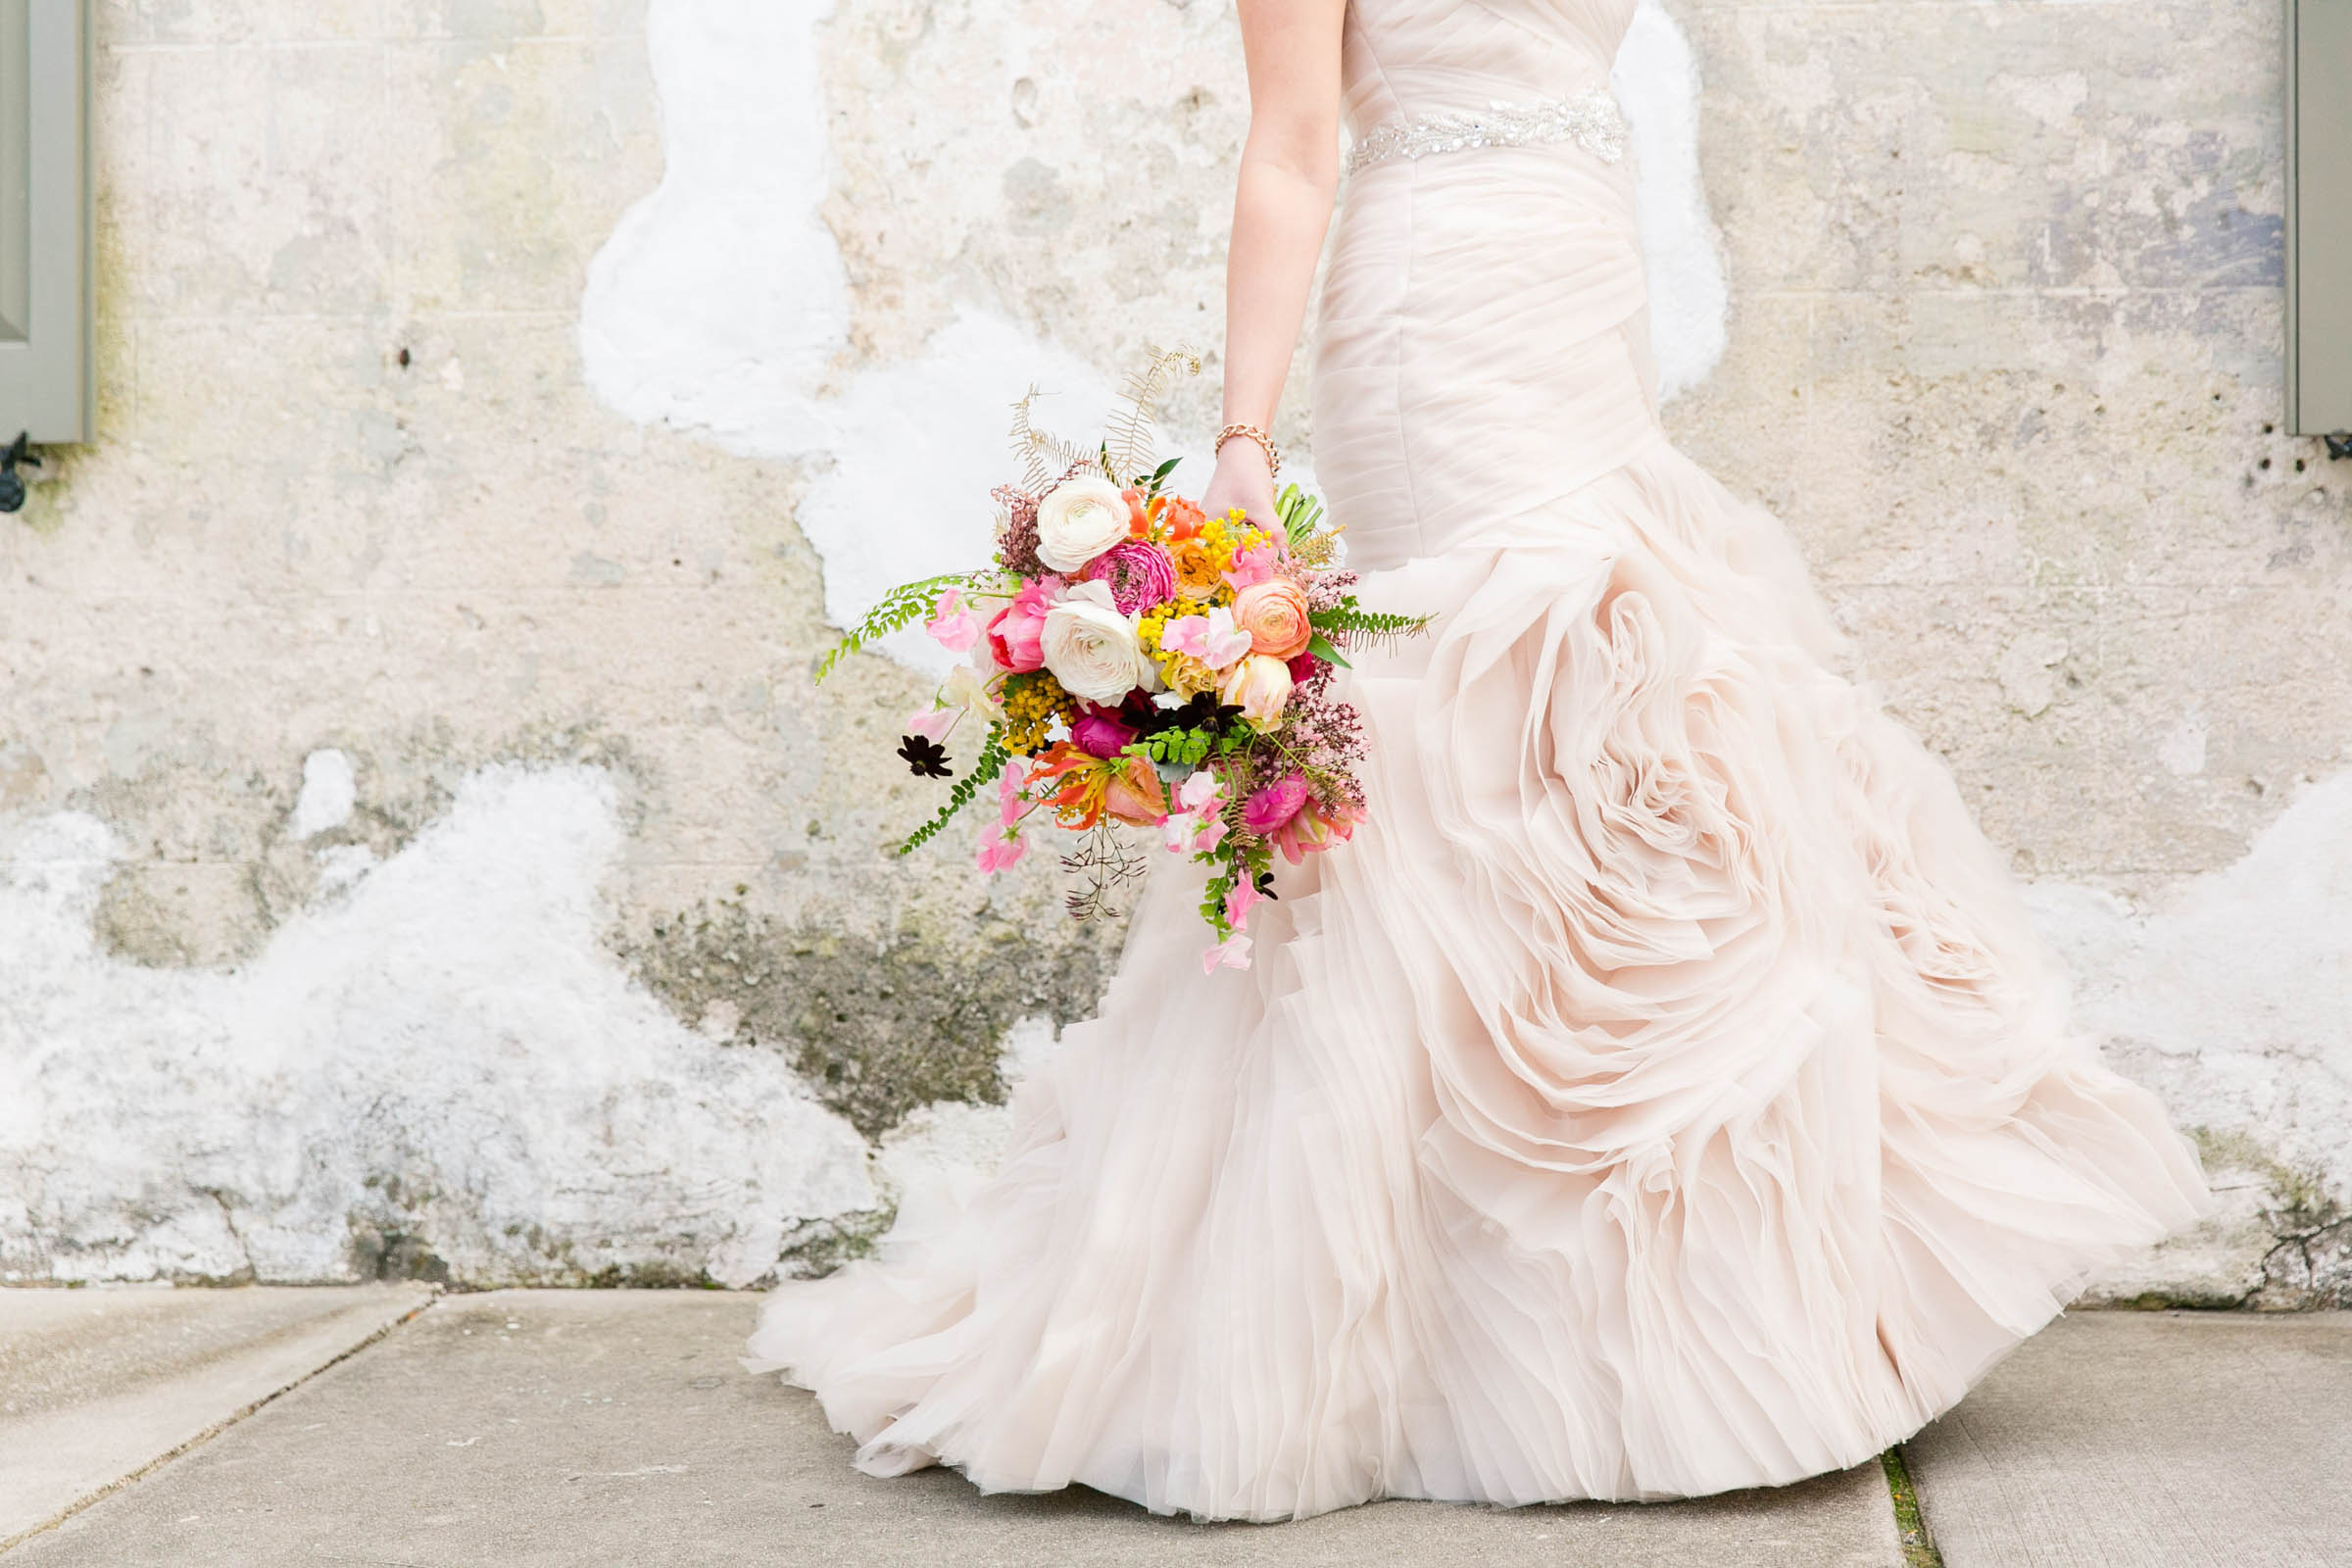 Blush bridal gown with rose shaped ruffled detail  - photo by Dana Cubbage Weddings